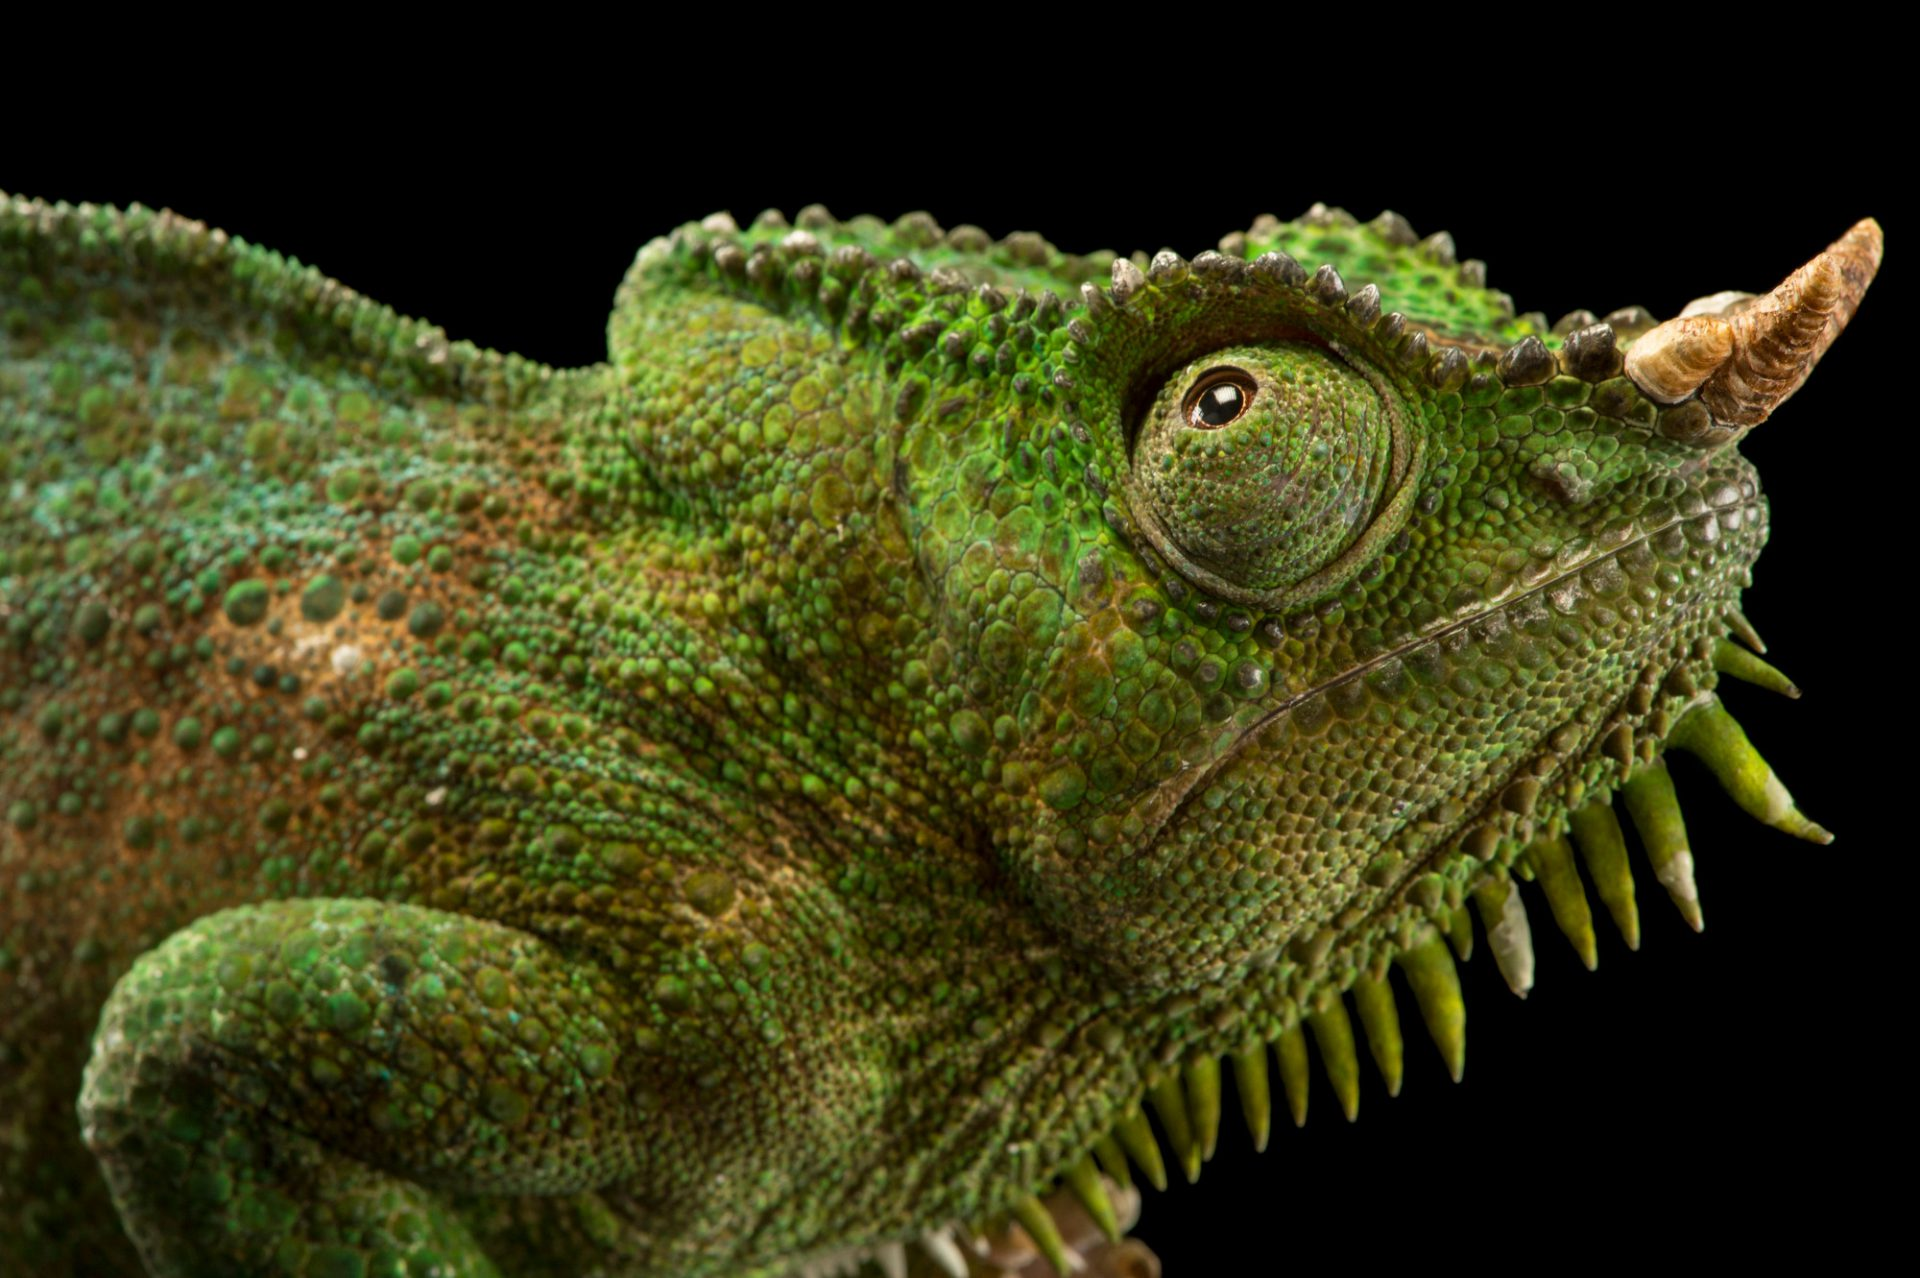 Picture of a four-horned chameleon (Chamaeleo quadricornis quadricornis) at the Saint Louis Zoo.